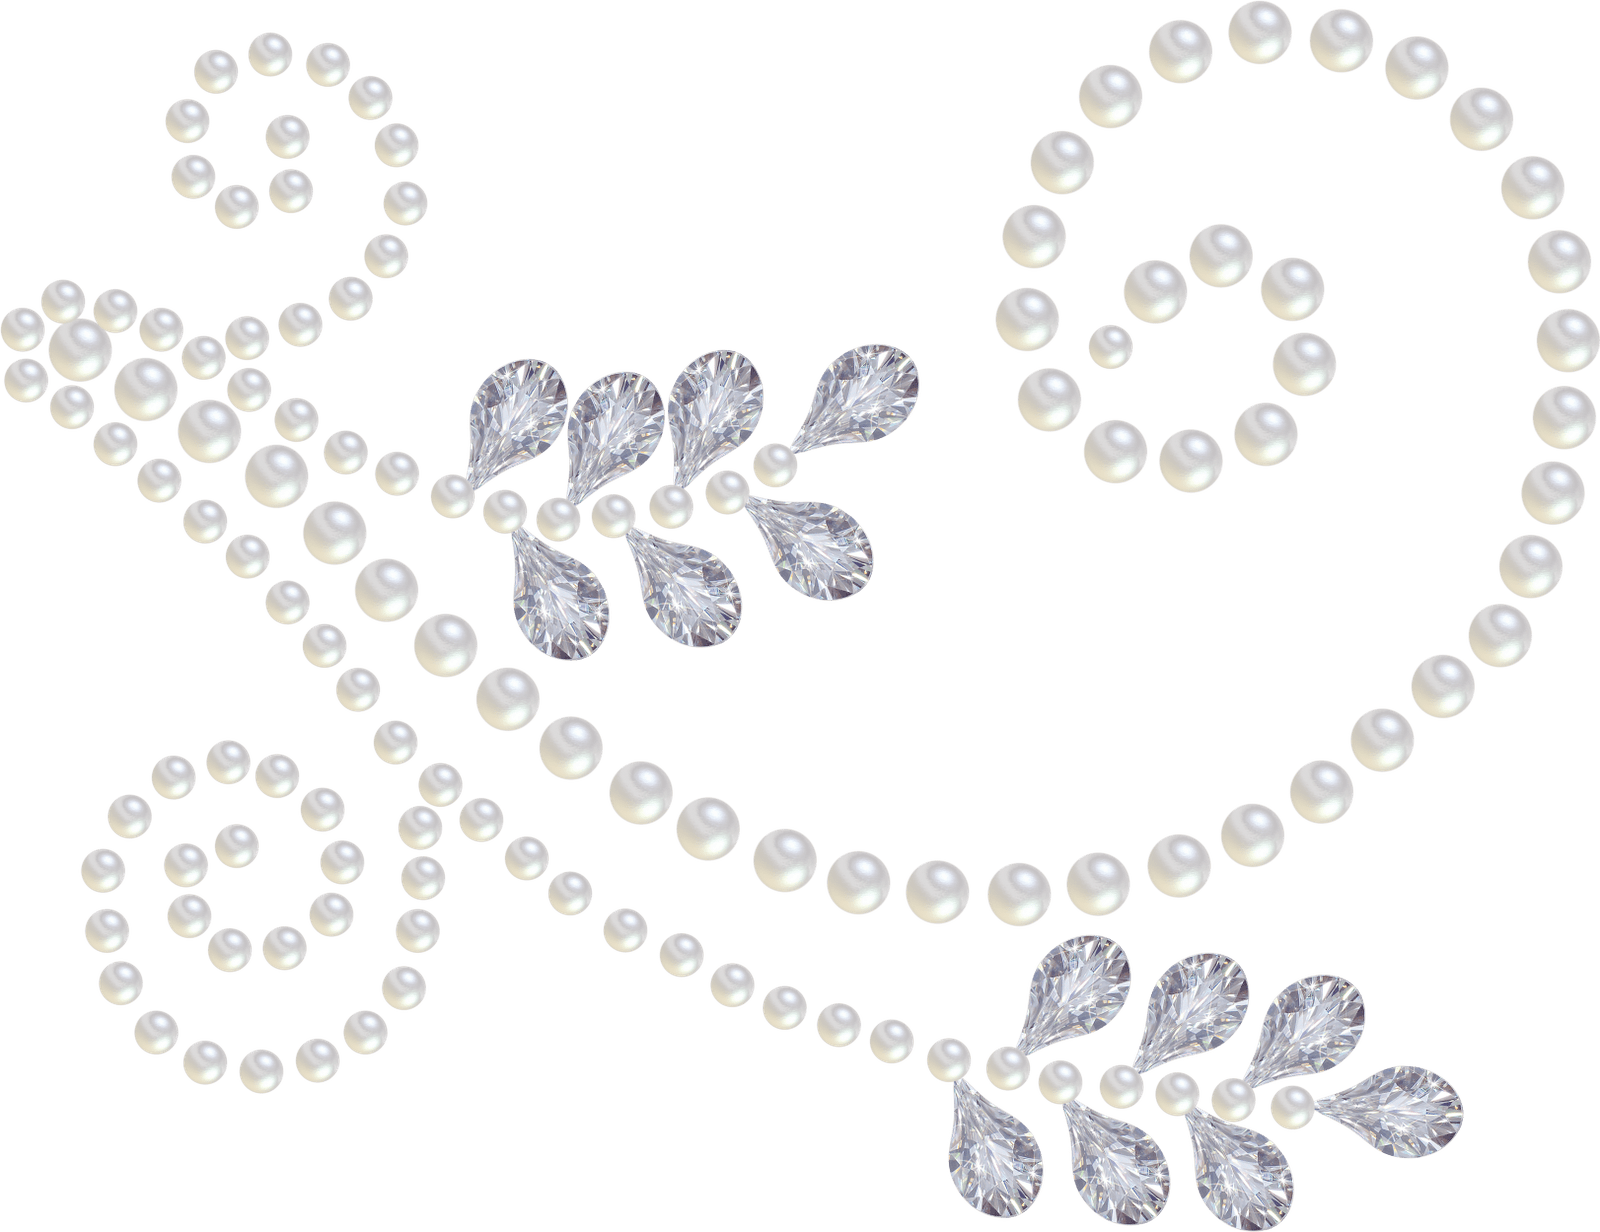 Pearl And Diamond Clip Art Check Out The Page There